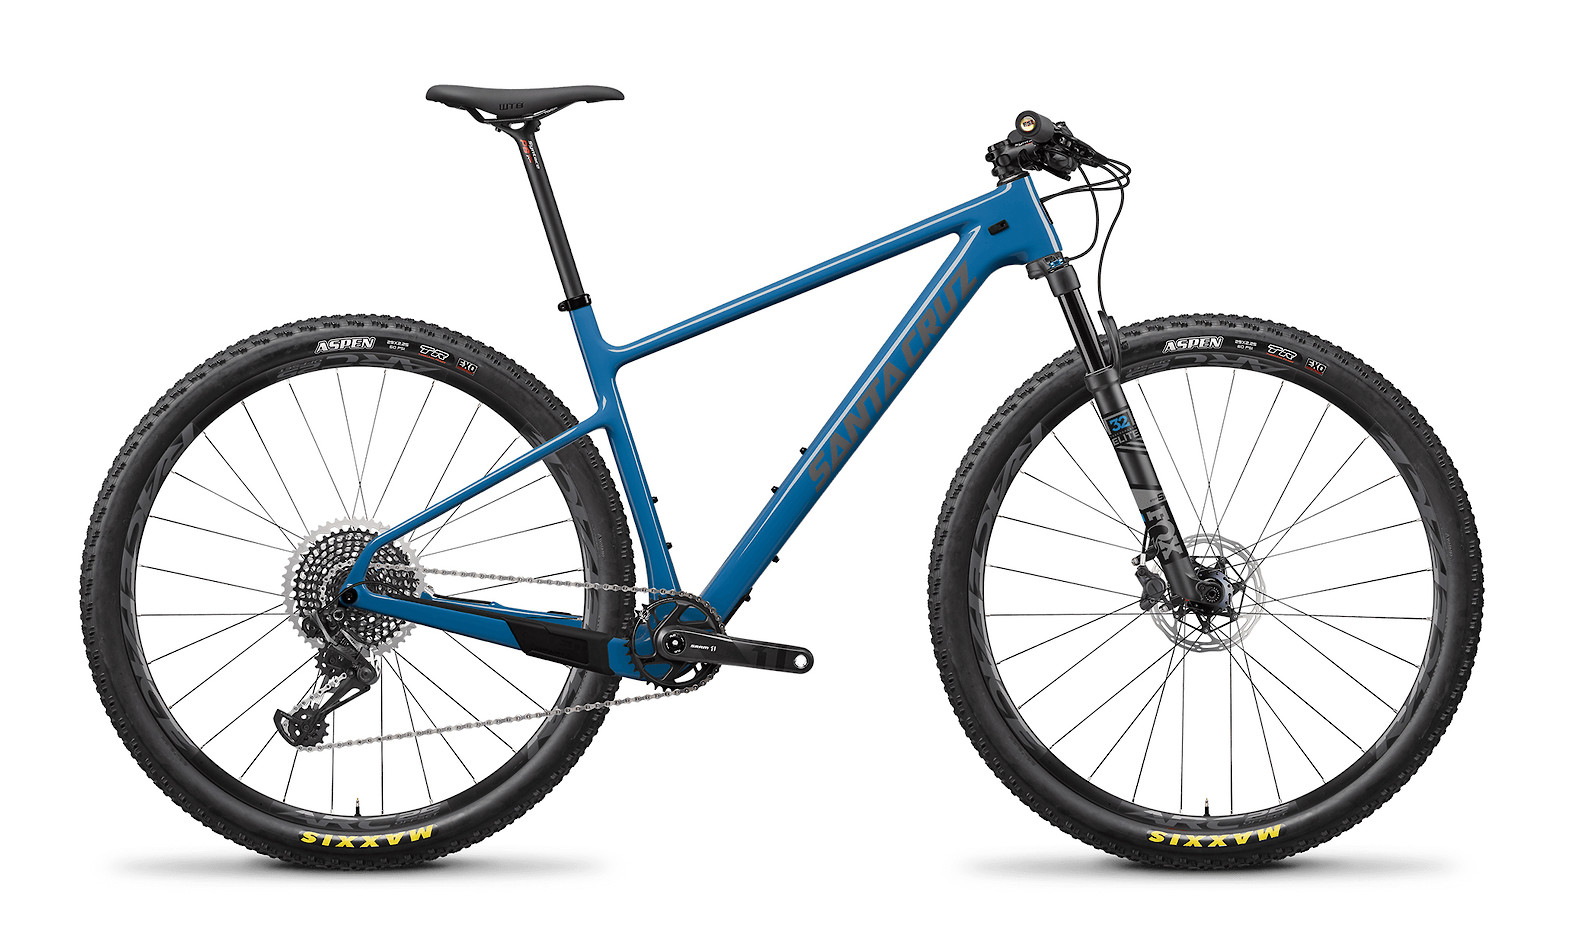 2020 Santa Cruz Highball Carbon CC X01 (WC Blue and Primer)